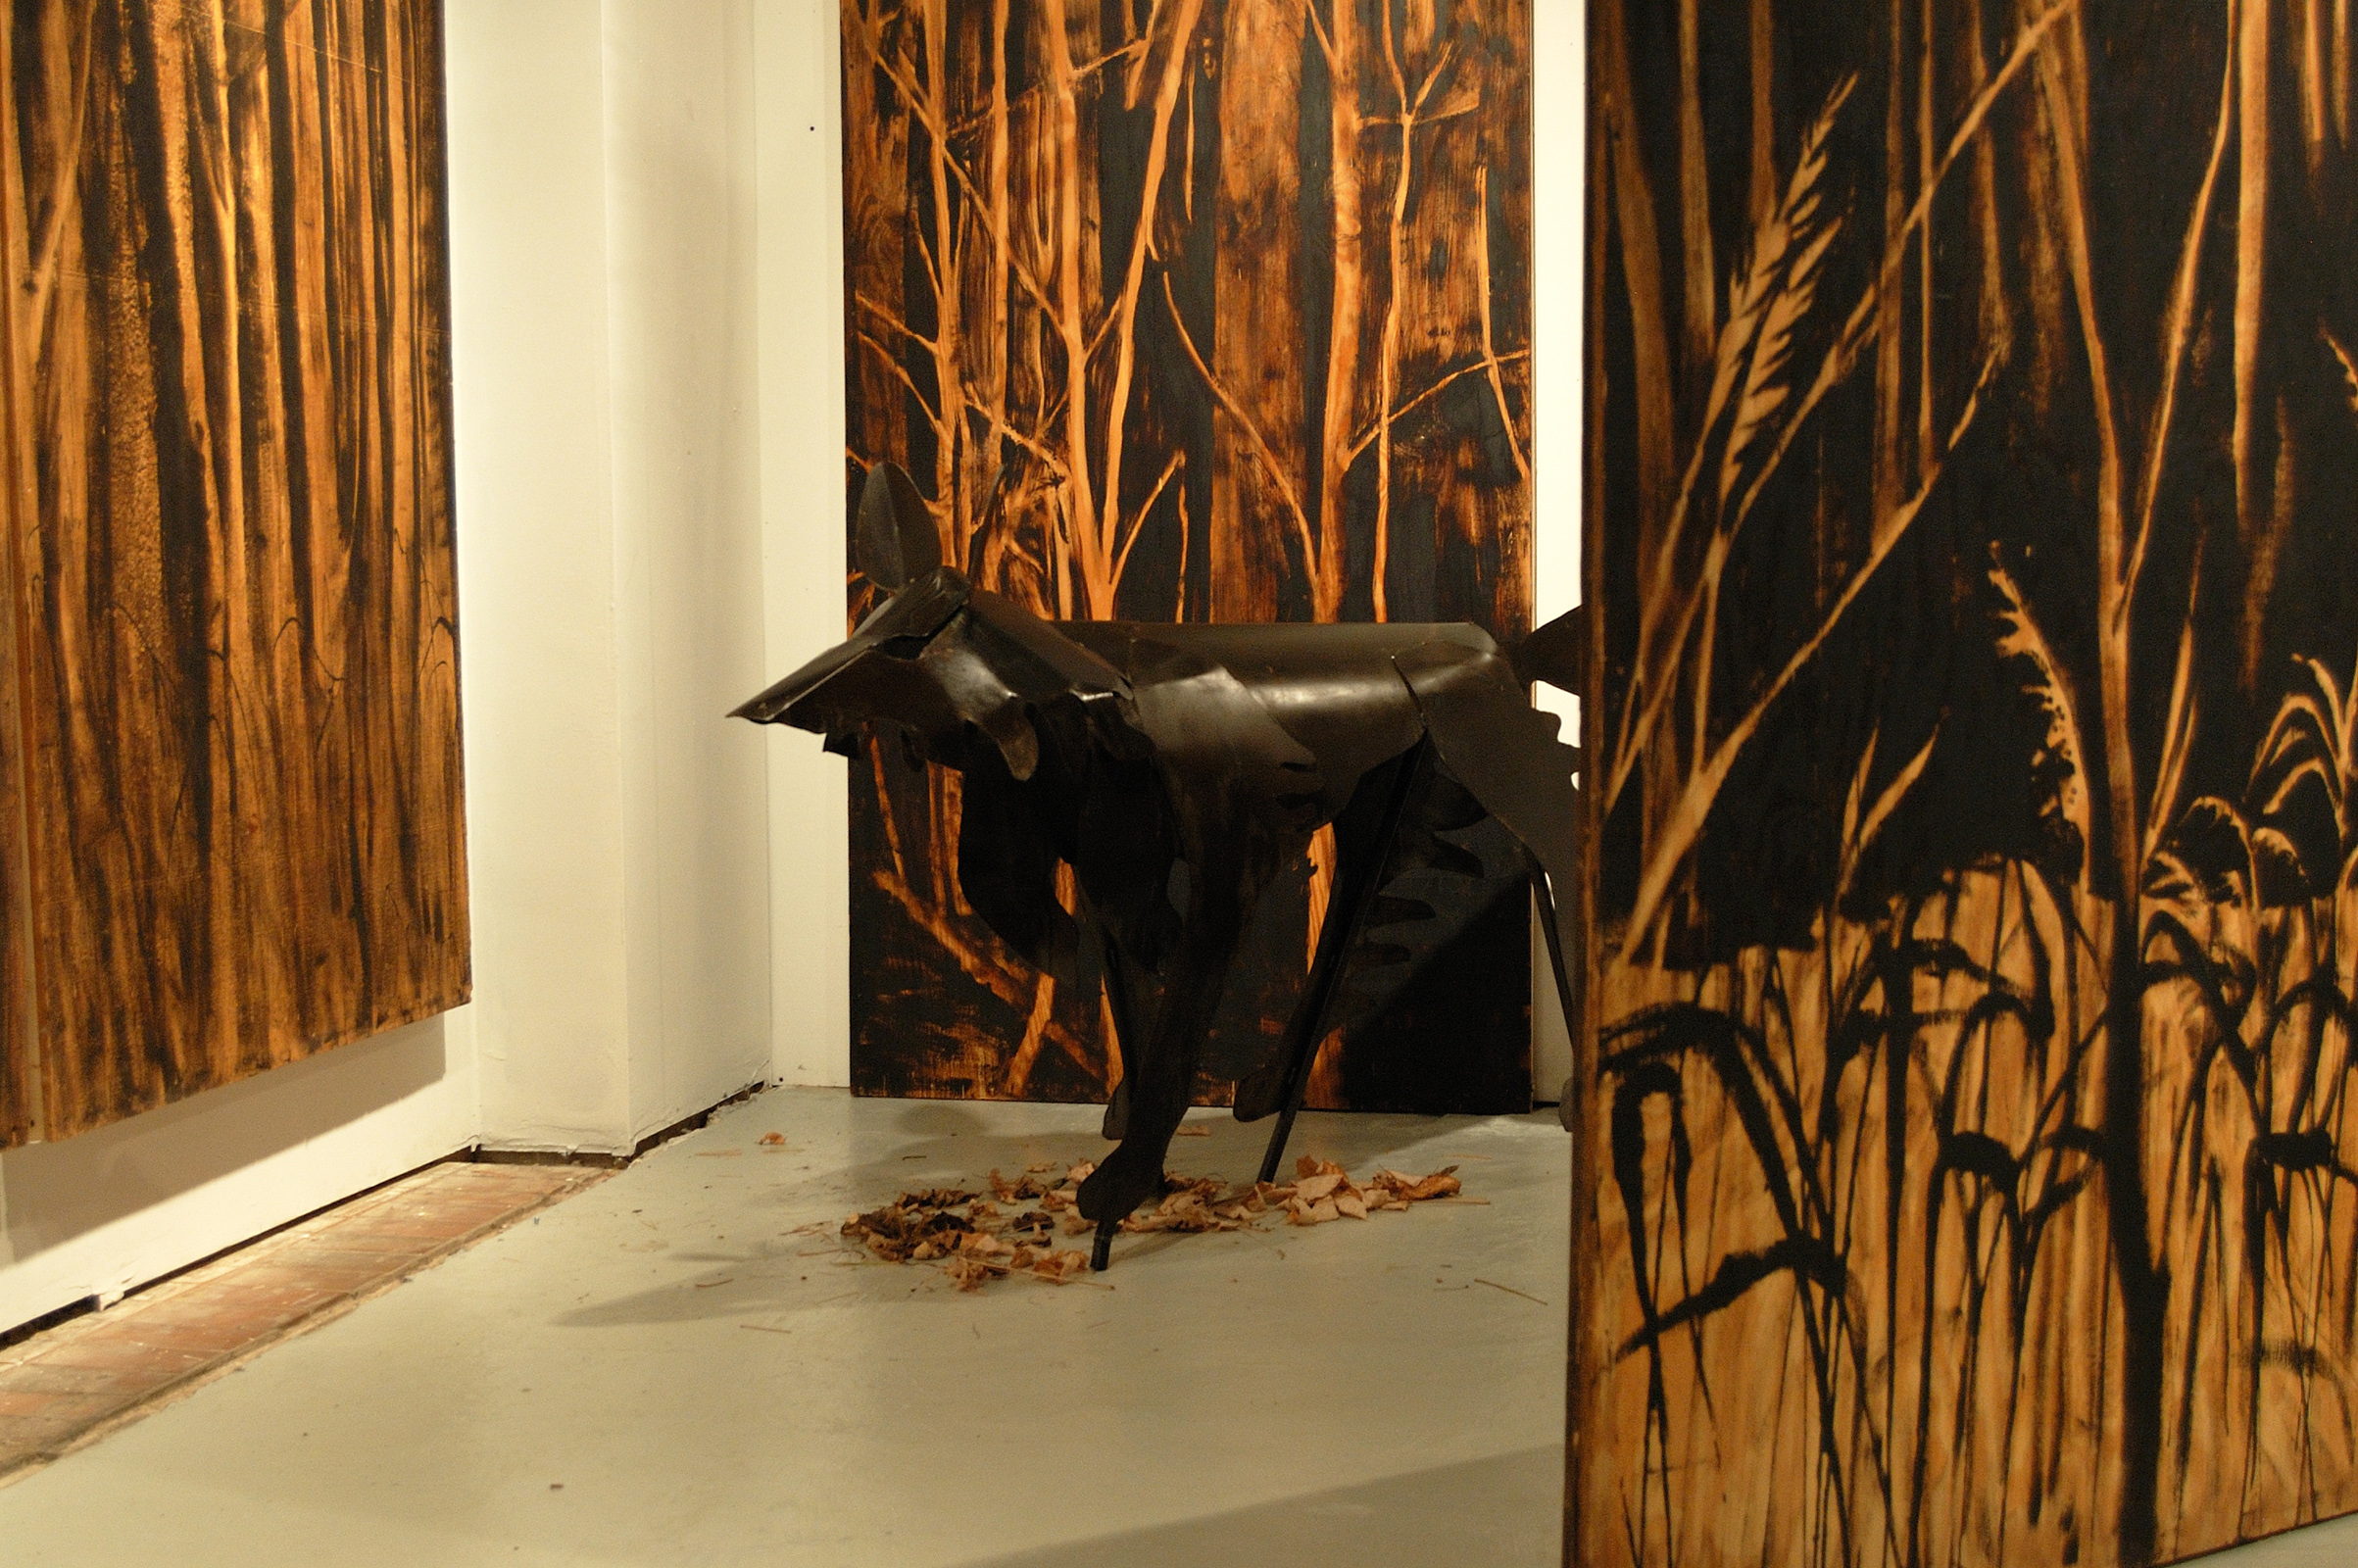 """Living Room"" was a one-person show at Gallery 13, 811 LaSalle St., Minneapolis, MN.  The animals are life-size, Corten steel, the panels, both freestanding  and wall-hung, are each 4' x 8' plywood, painted in asphaltum. The wolf here is called ""Grimm's Wolf"" and depicts human view of wolf as predator: the Big Bad one."